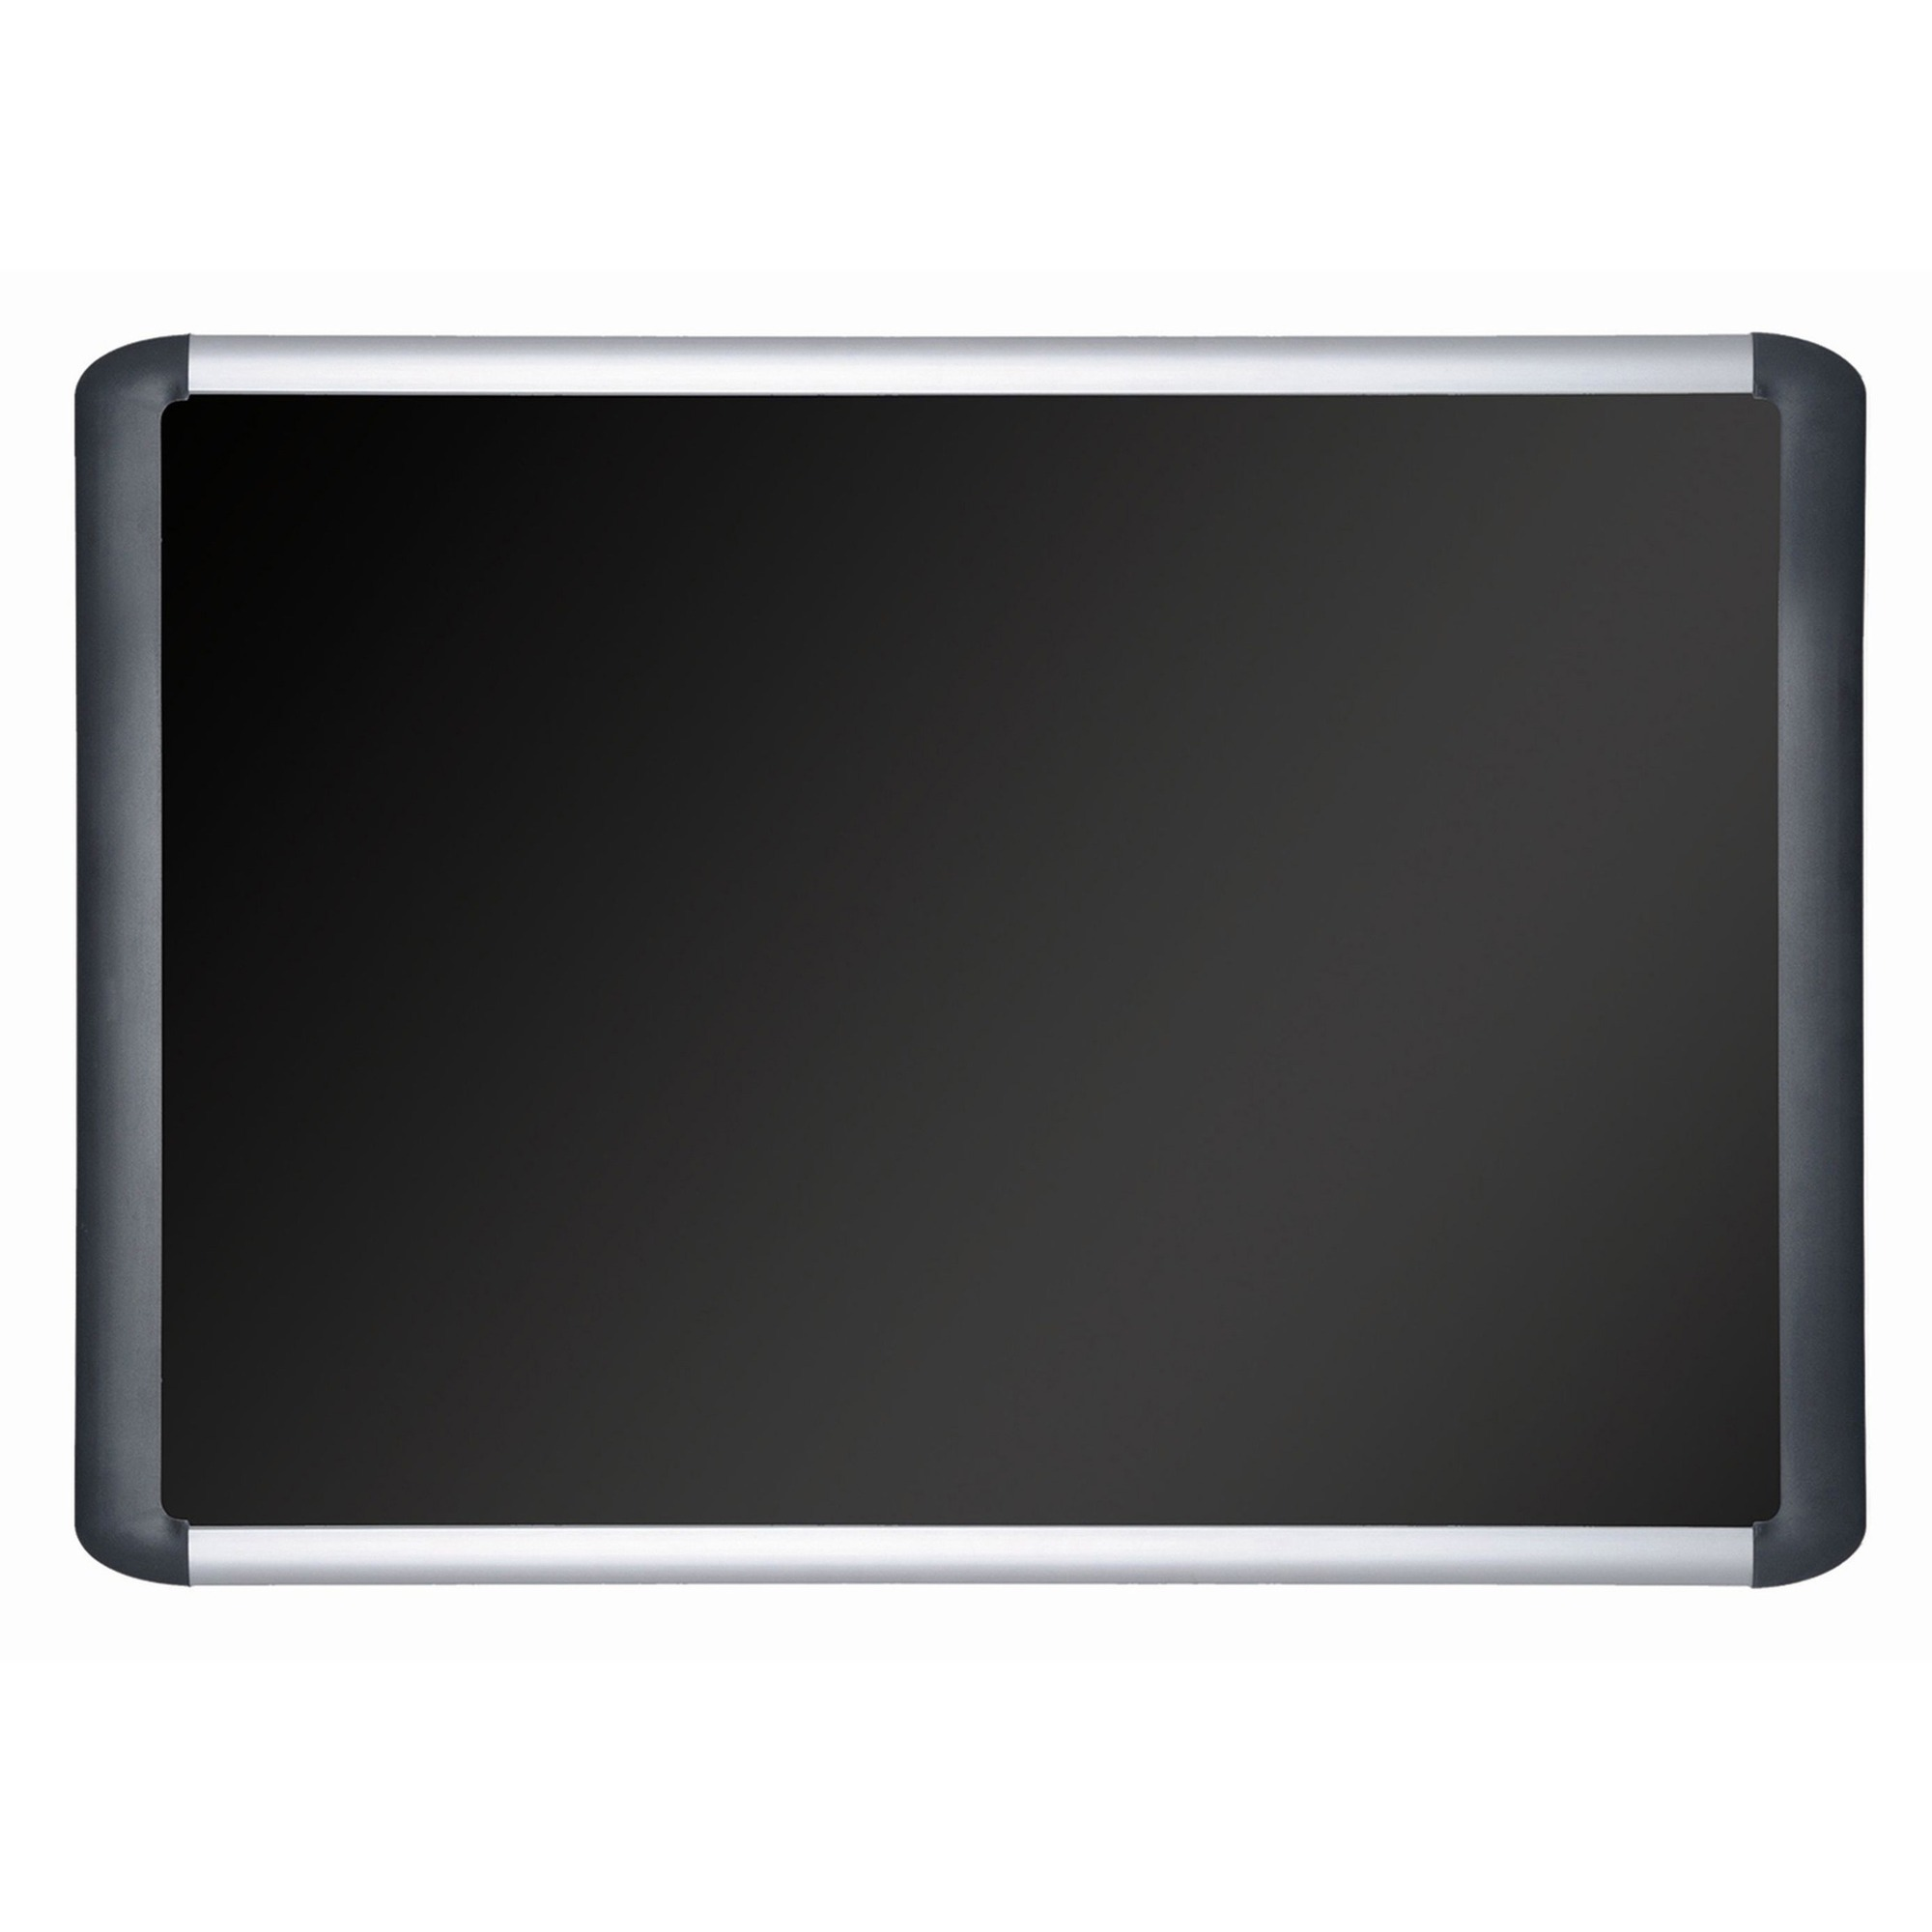 Bi-silque S.a Mastervision 6 Soft Touch Deluxe Bulletin Board - 48 Height X 72 Width - Black Fabric Surface - Sturdy - Black Aluminum Frame - 1 Each